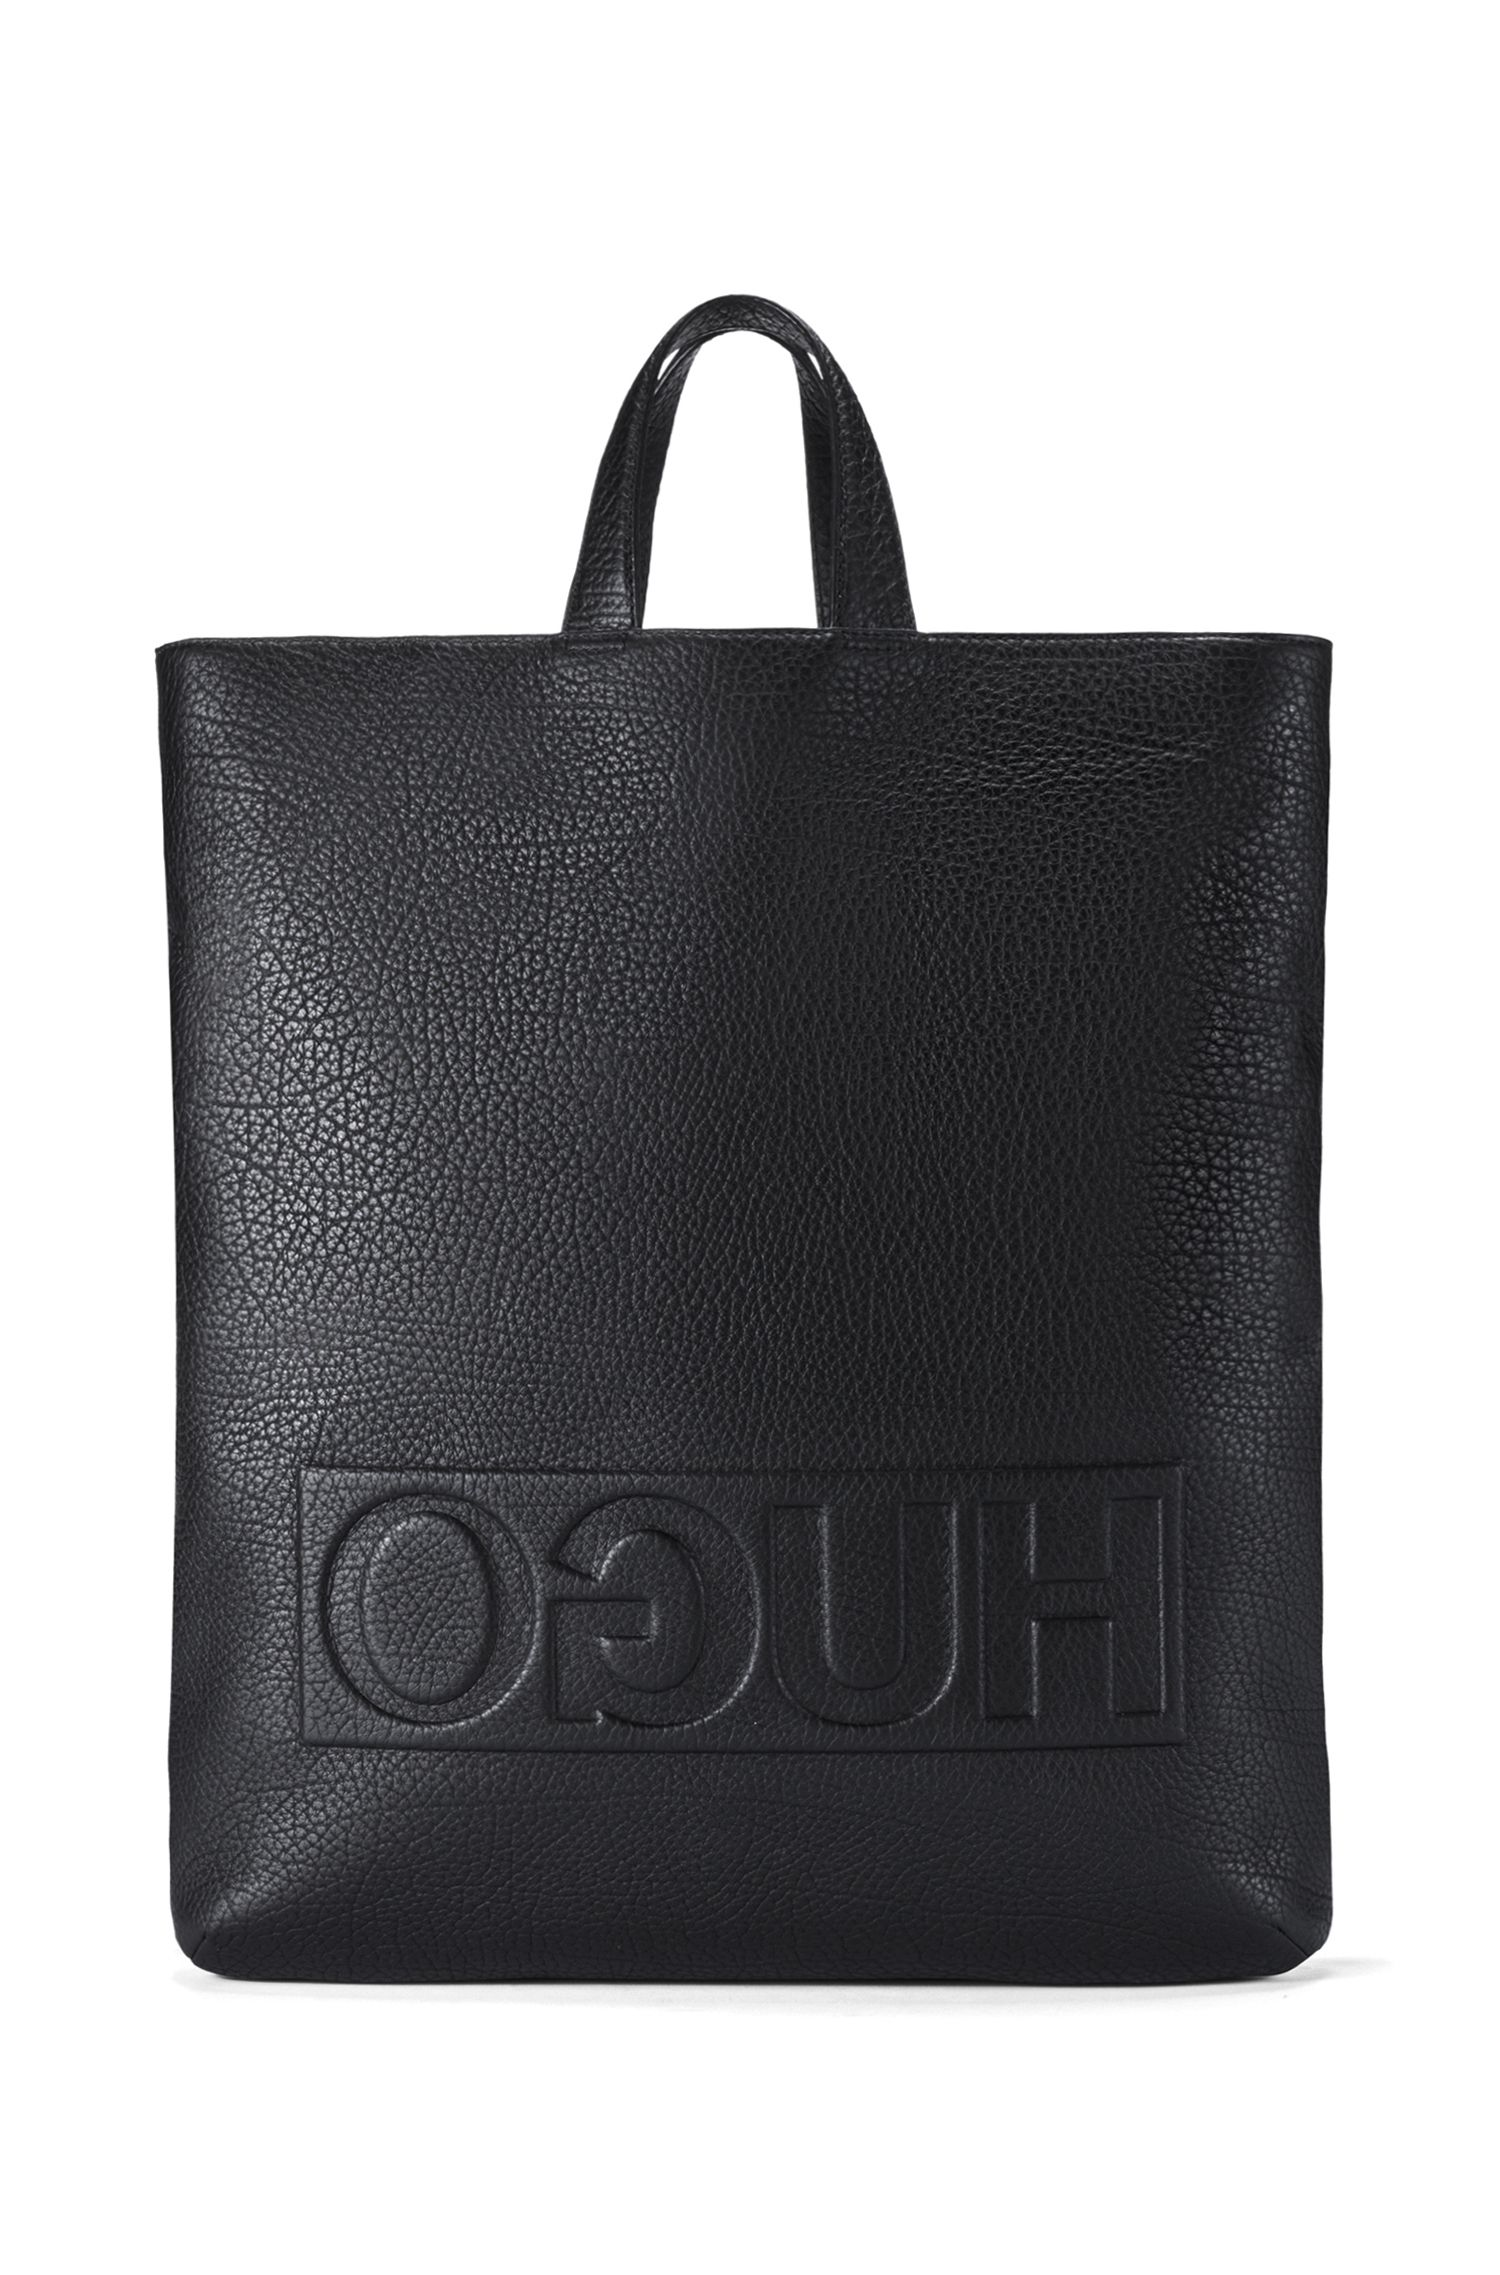 Reverse-logo tote backpack in grained Italian leather